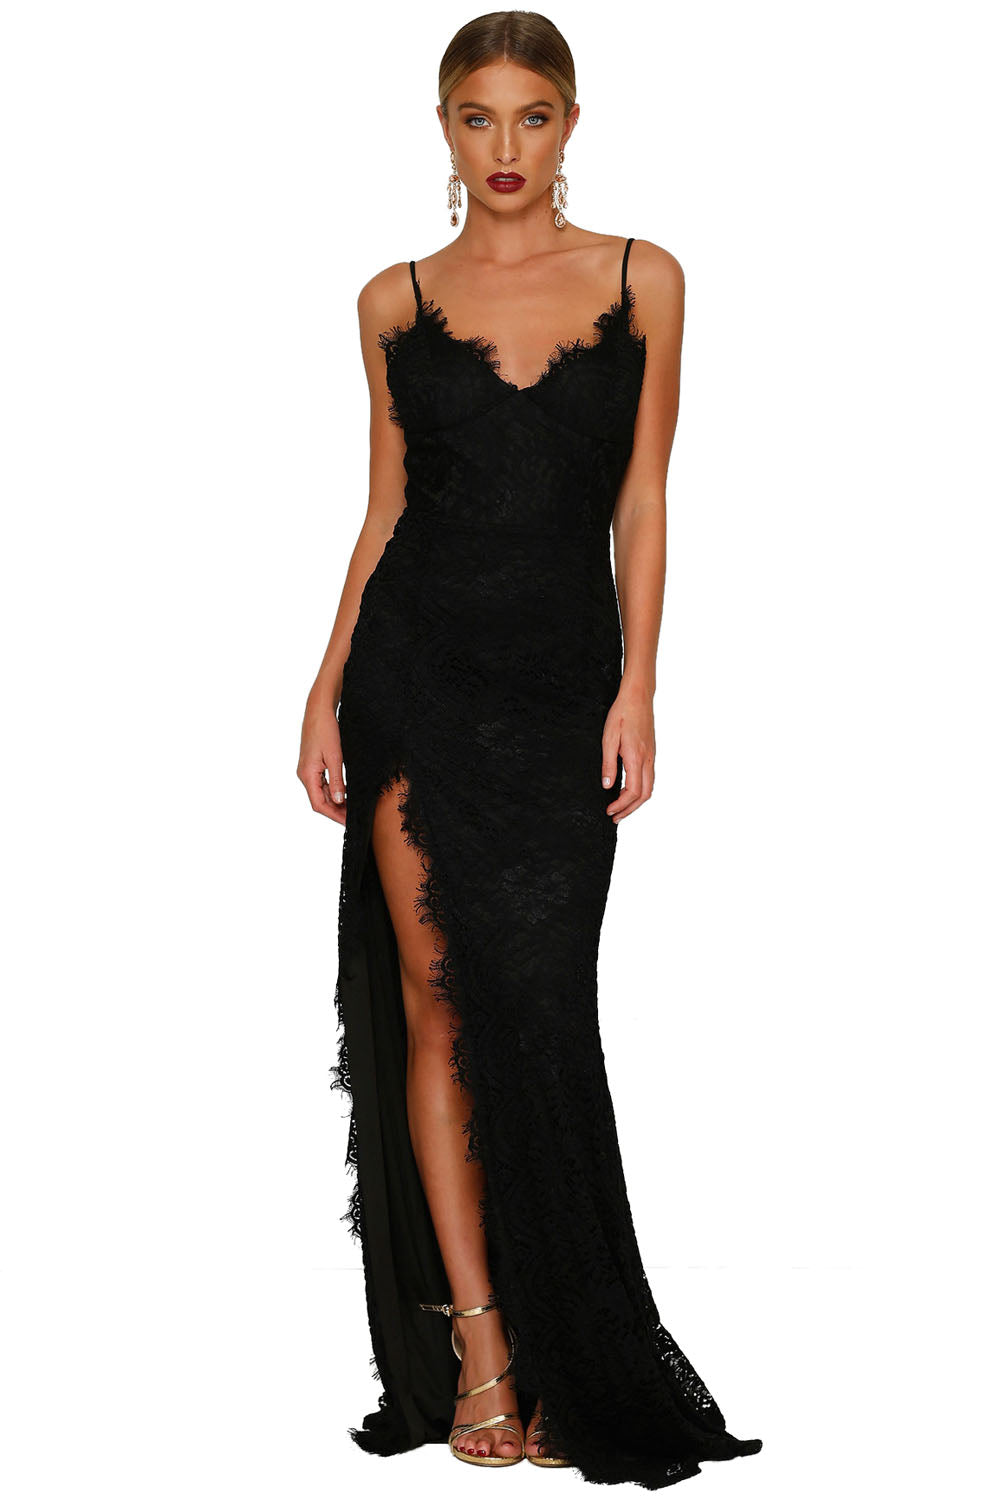 Black Chic Lace Maxi Dress - MSCOOCO